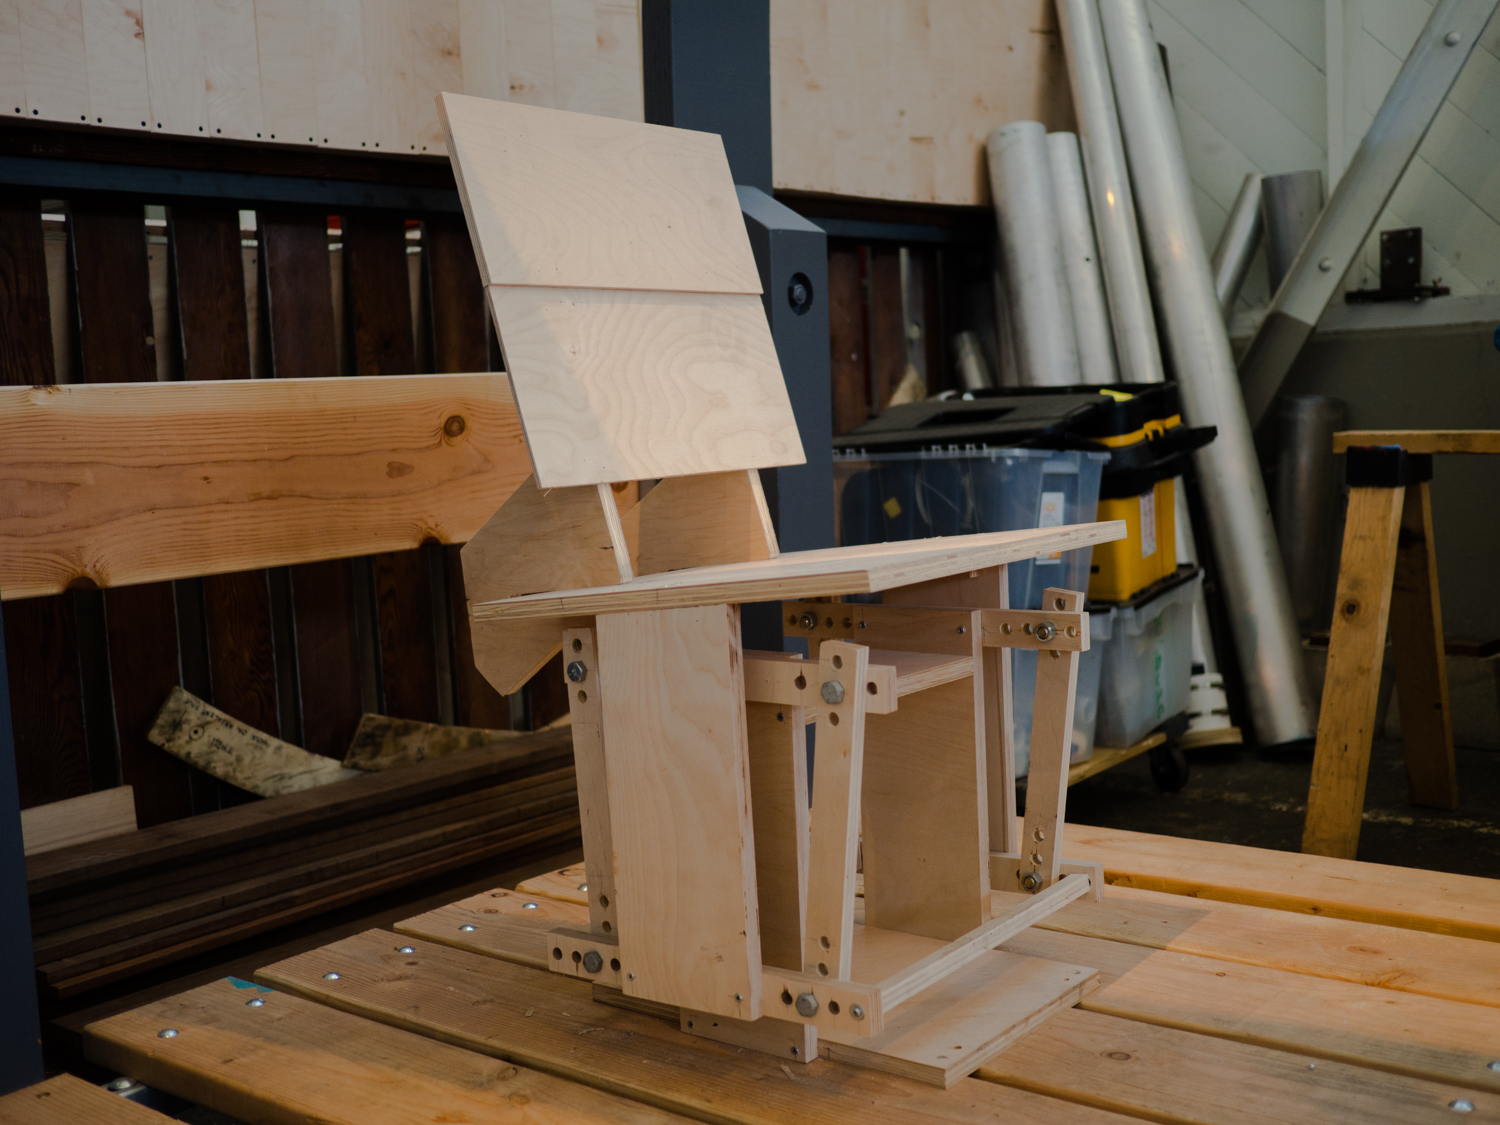 Adjustable prototype of the rocking chair